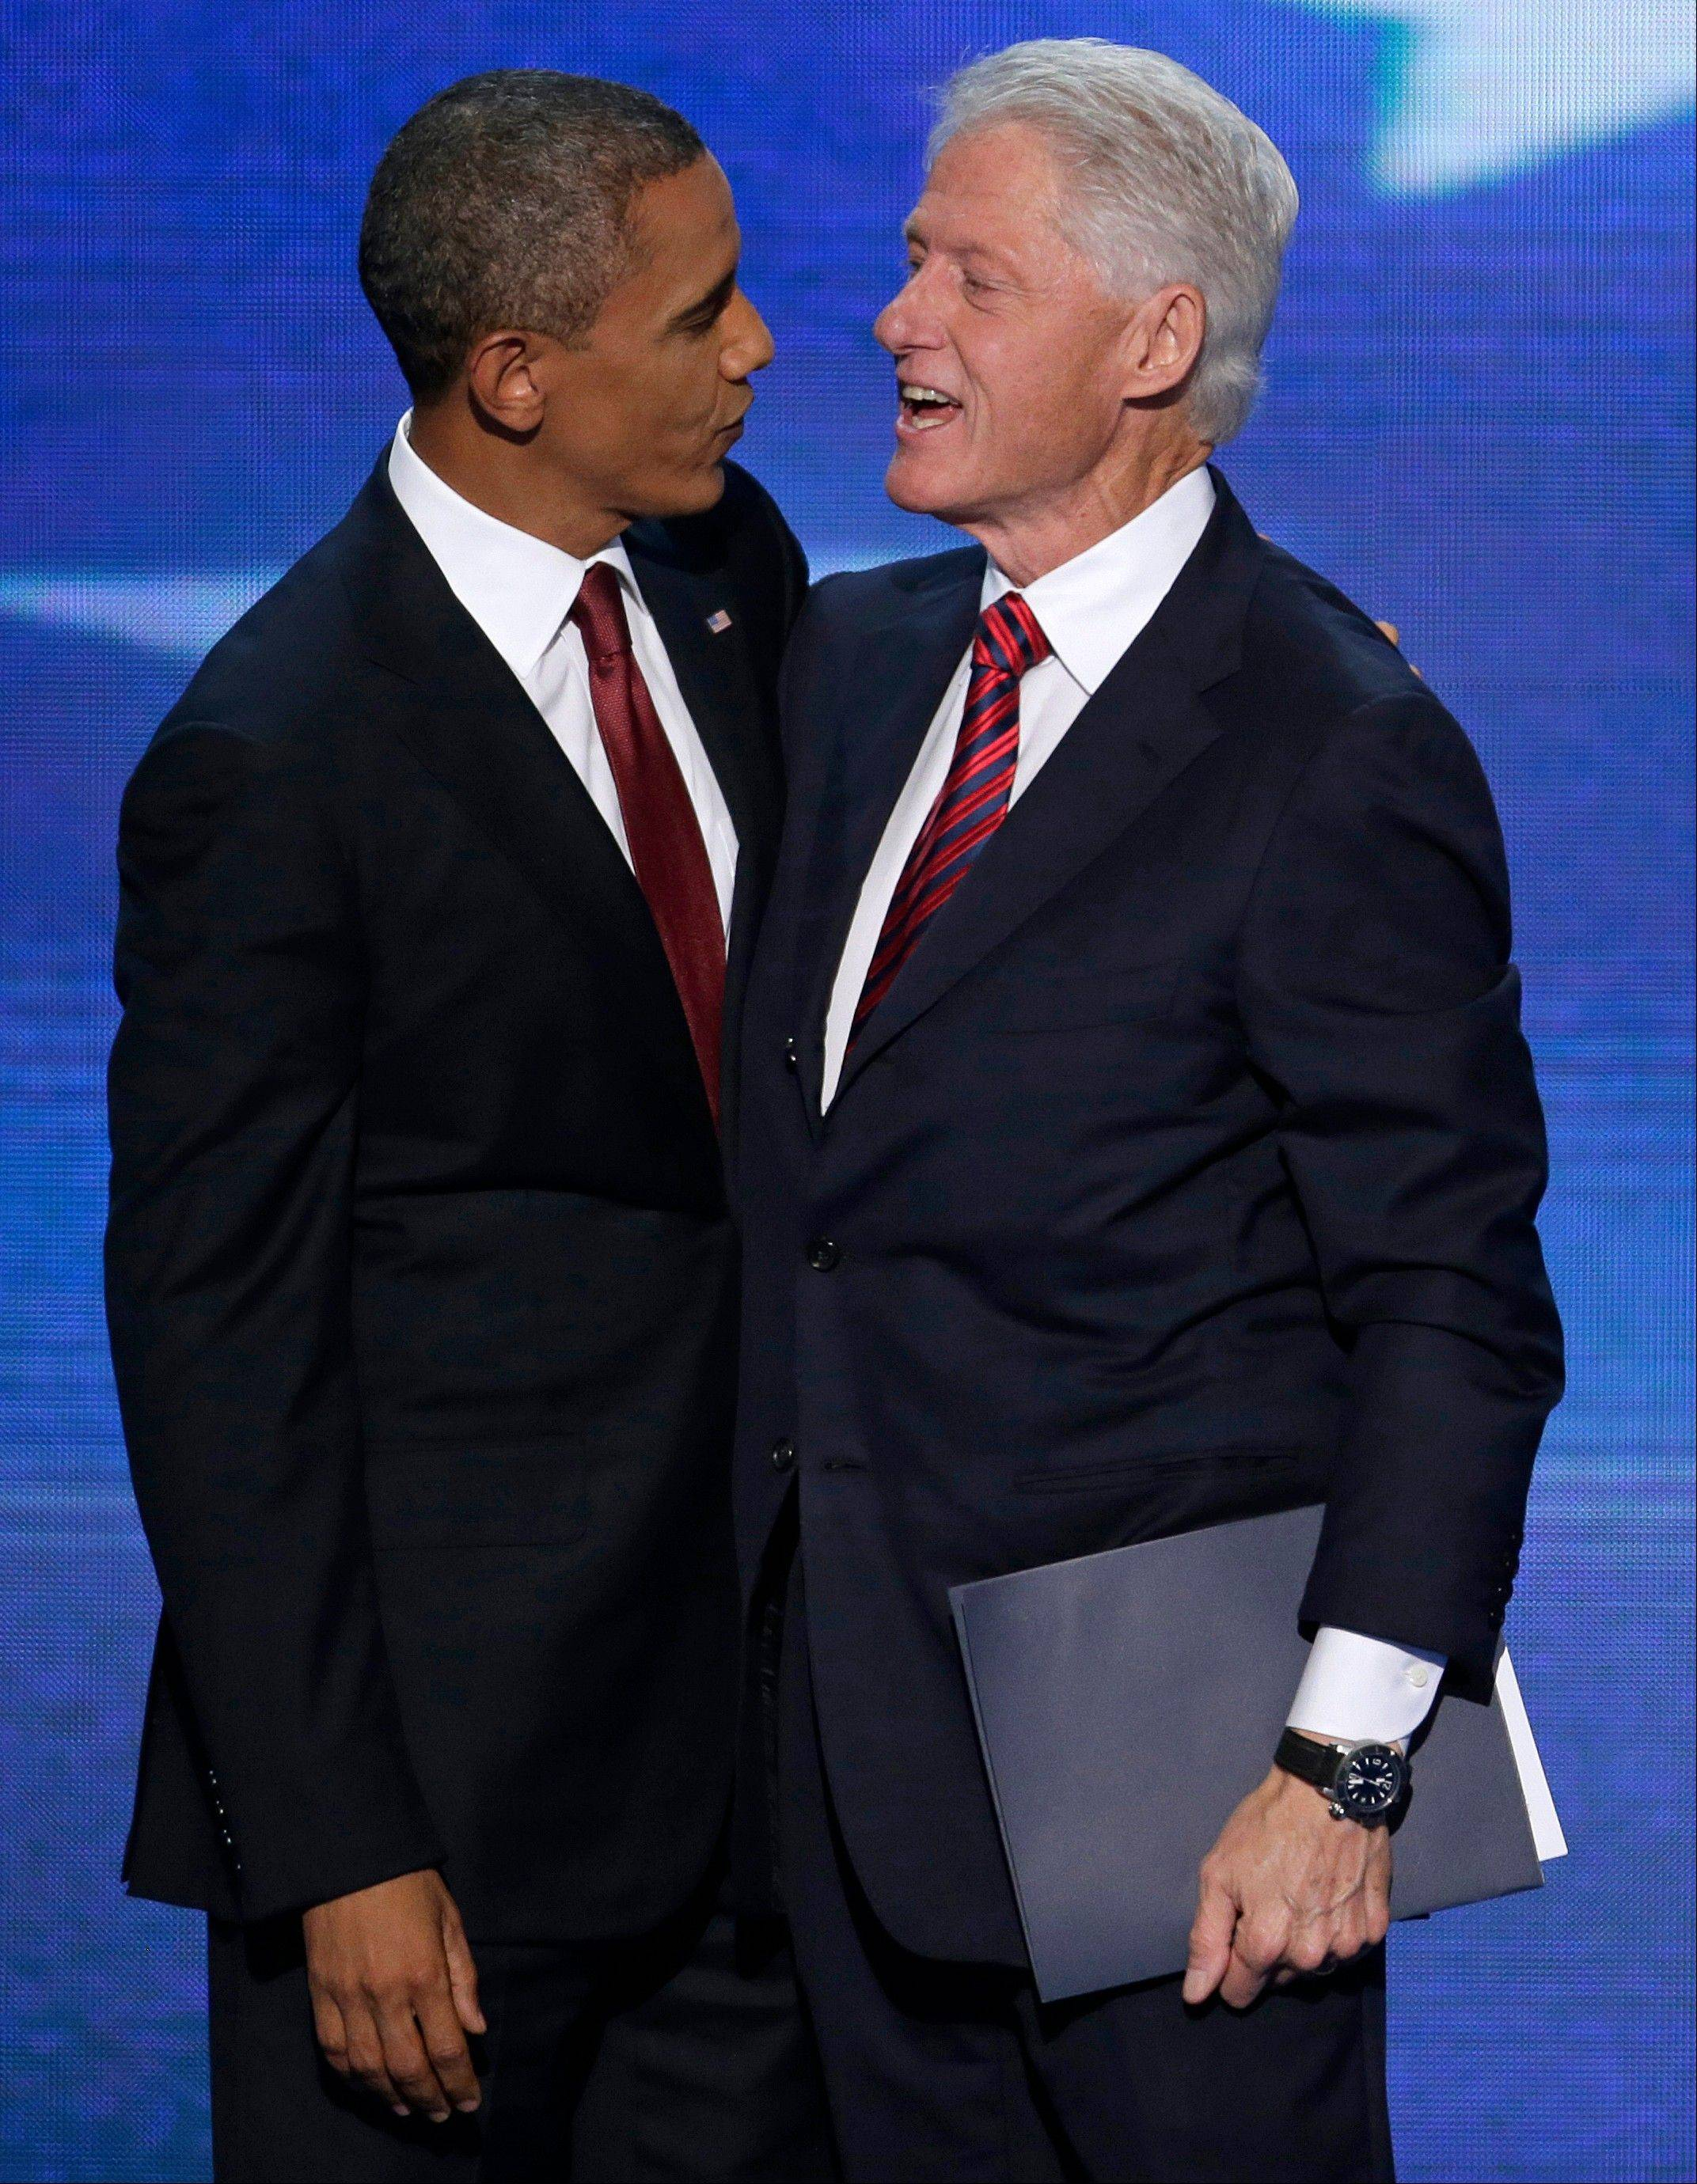 Former President Bill Clinton talks with President Barack Obama after Clinton's speech to the Democratic National Convention in Charlotte, N.C., on Wednesday.